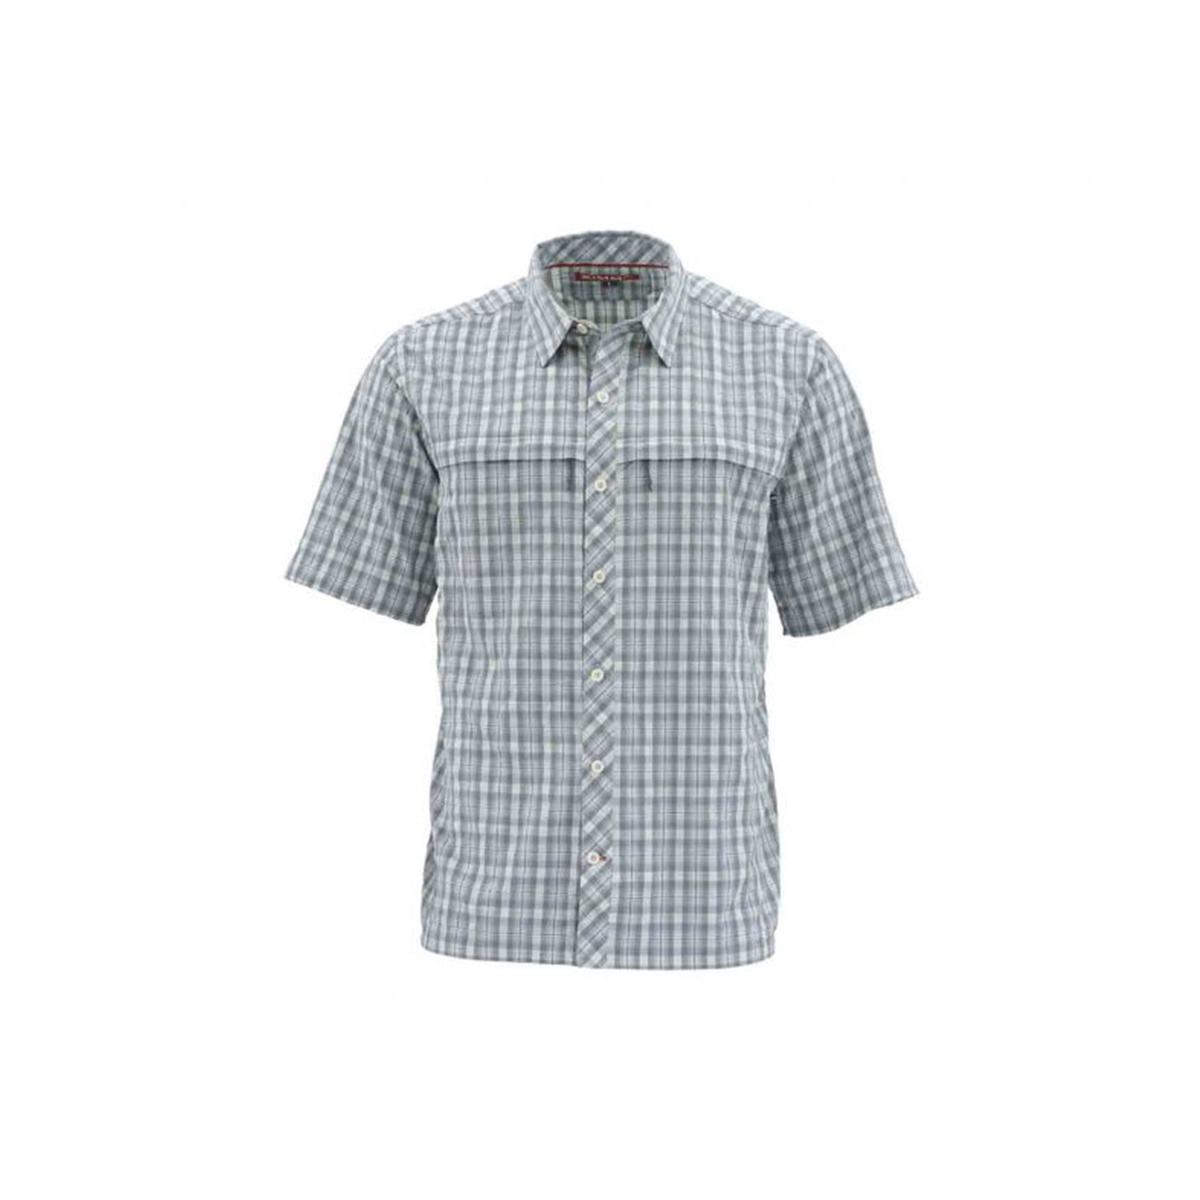 Simms Clothing Stone Cold Short Sleeve Shirt